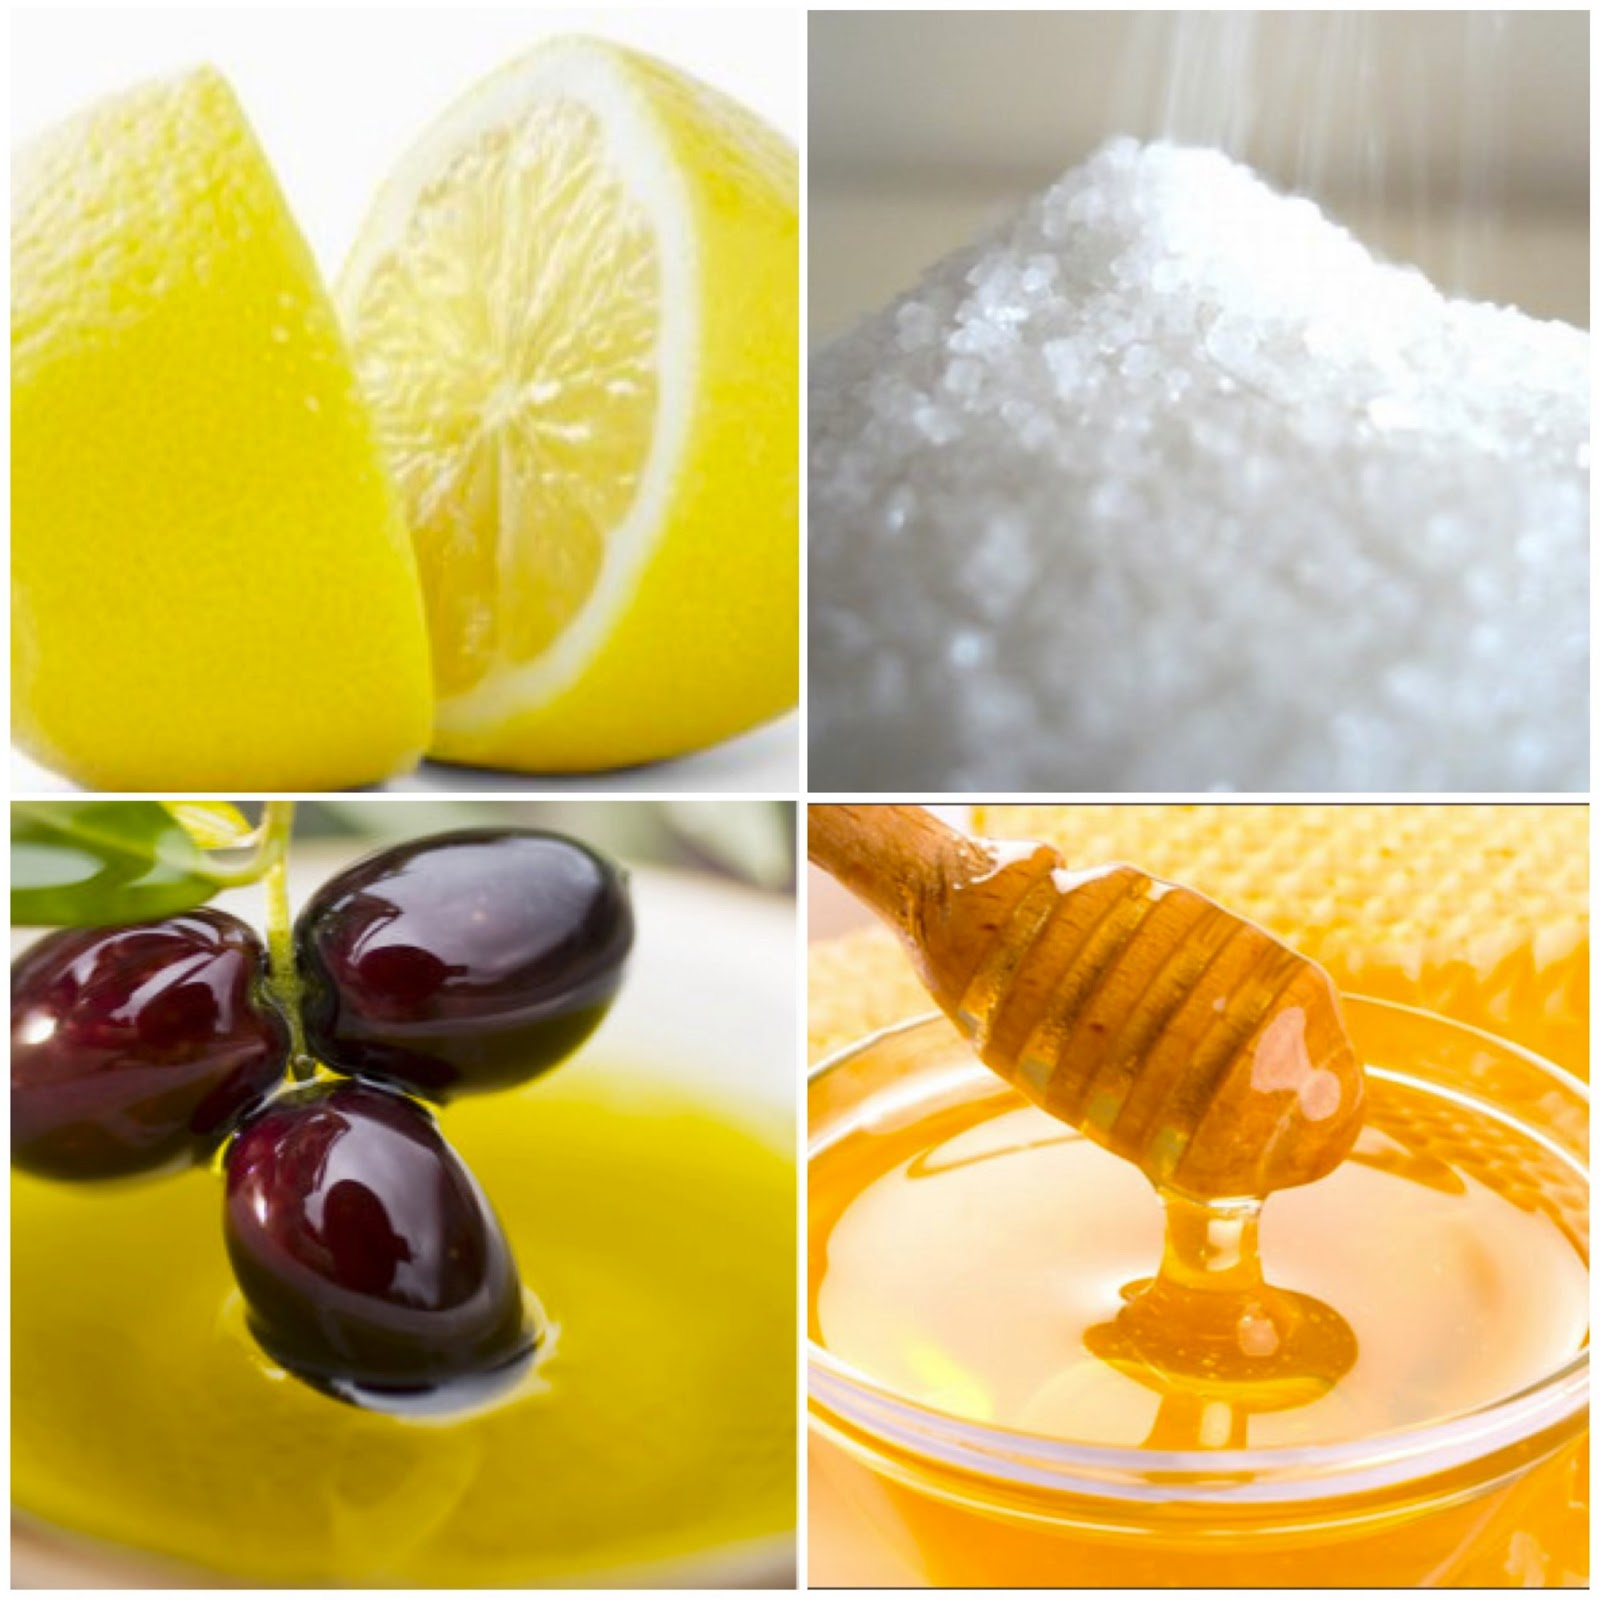 Lemon Sugar Facial Scrub For Acne Scars